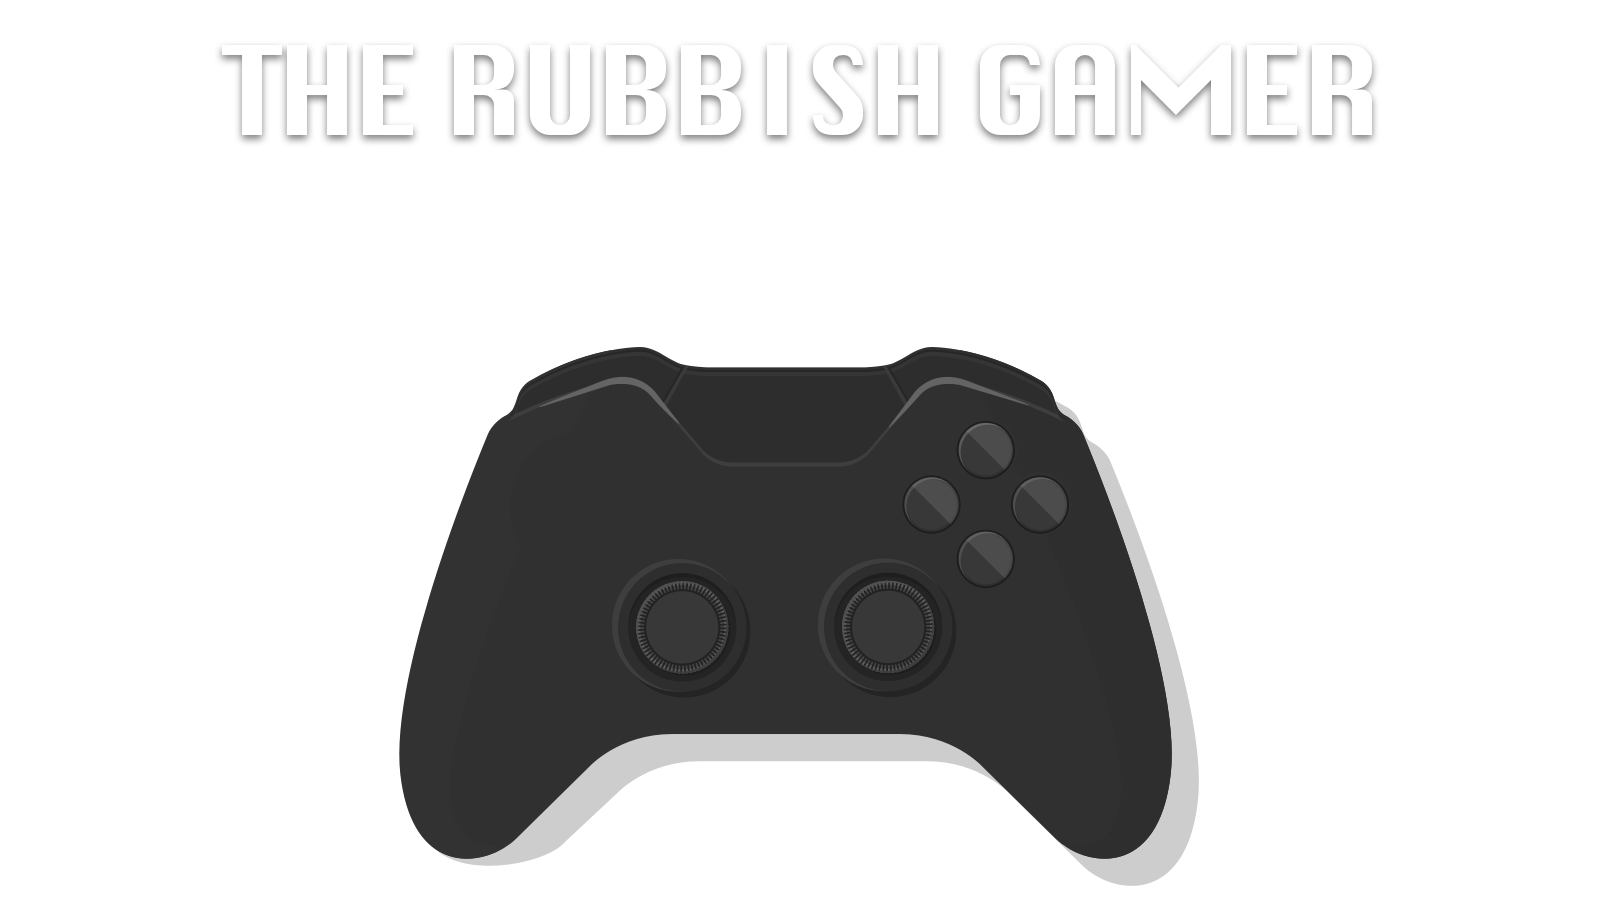 The Rubbish Gamer